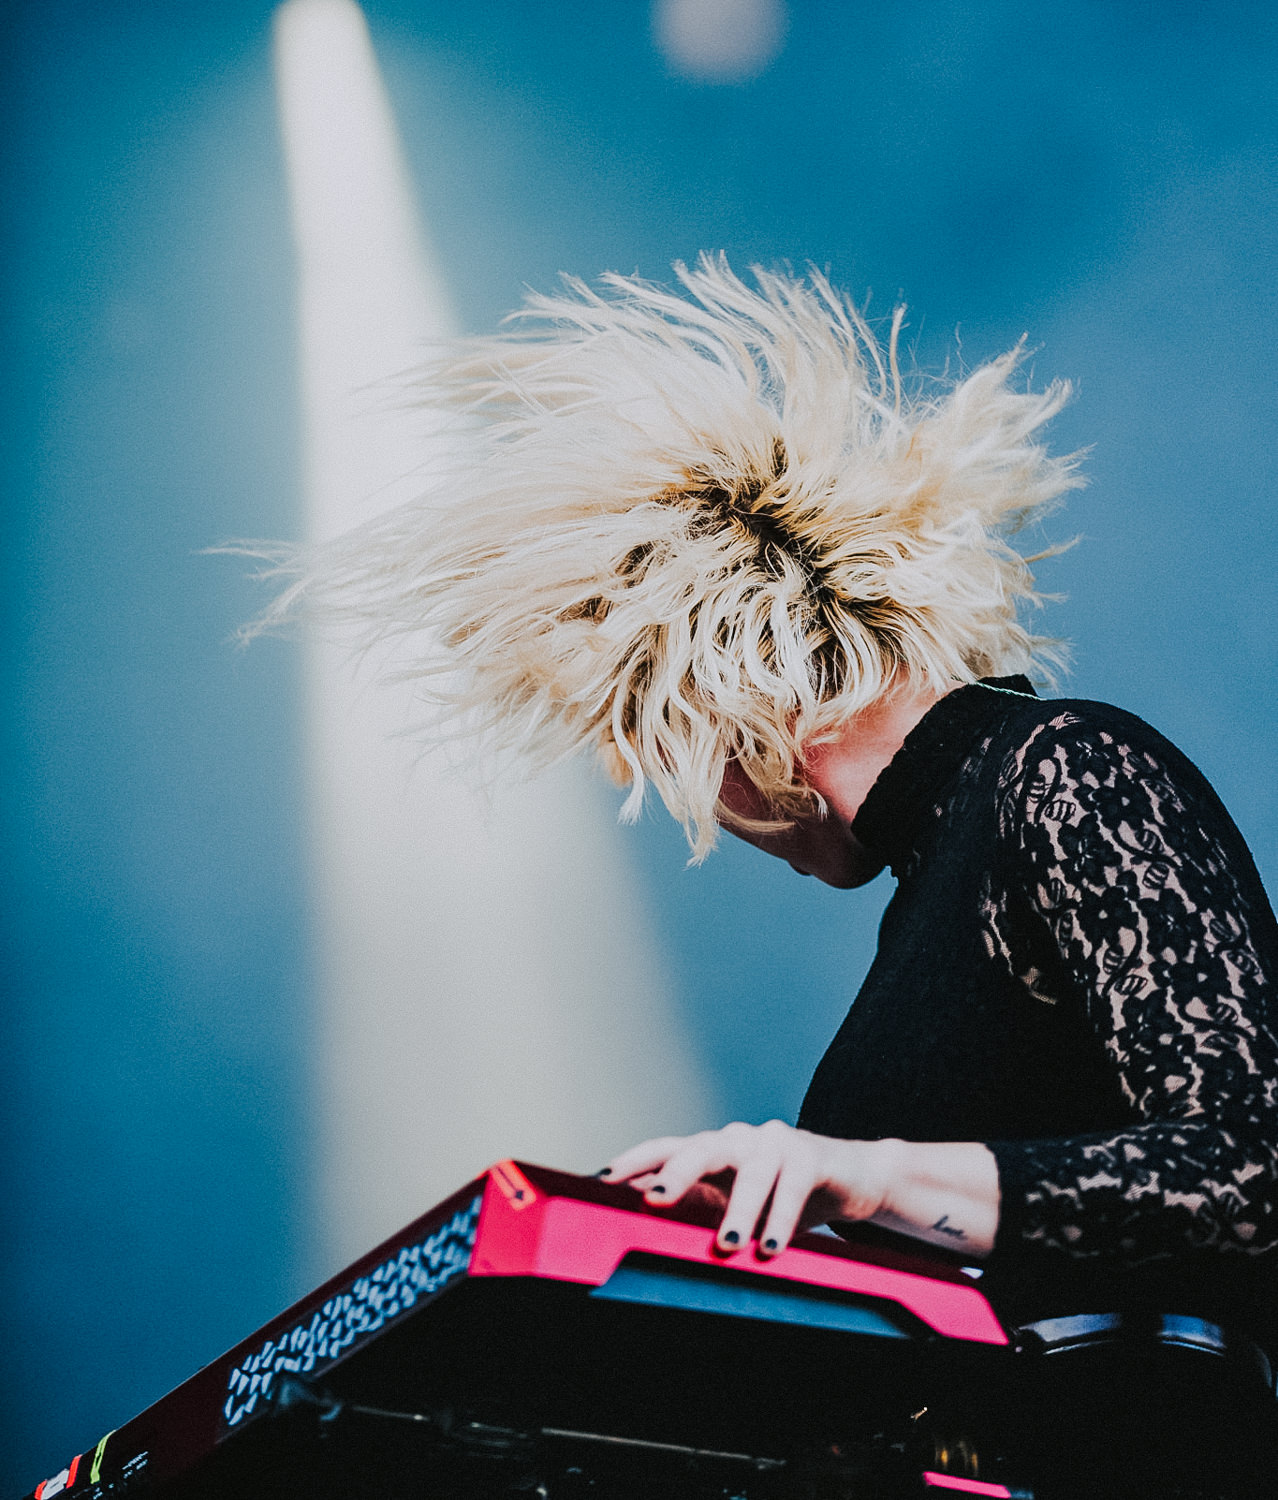 hannah-hair-flip-keys-grouplove-tour-AnnaLeeMedia